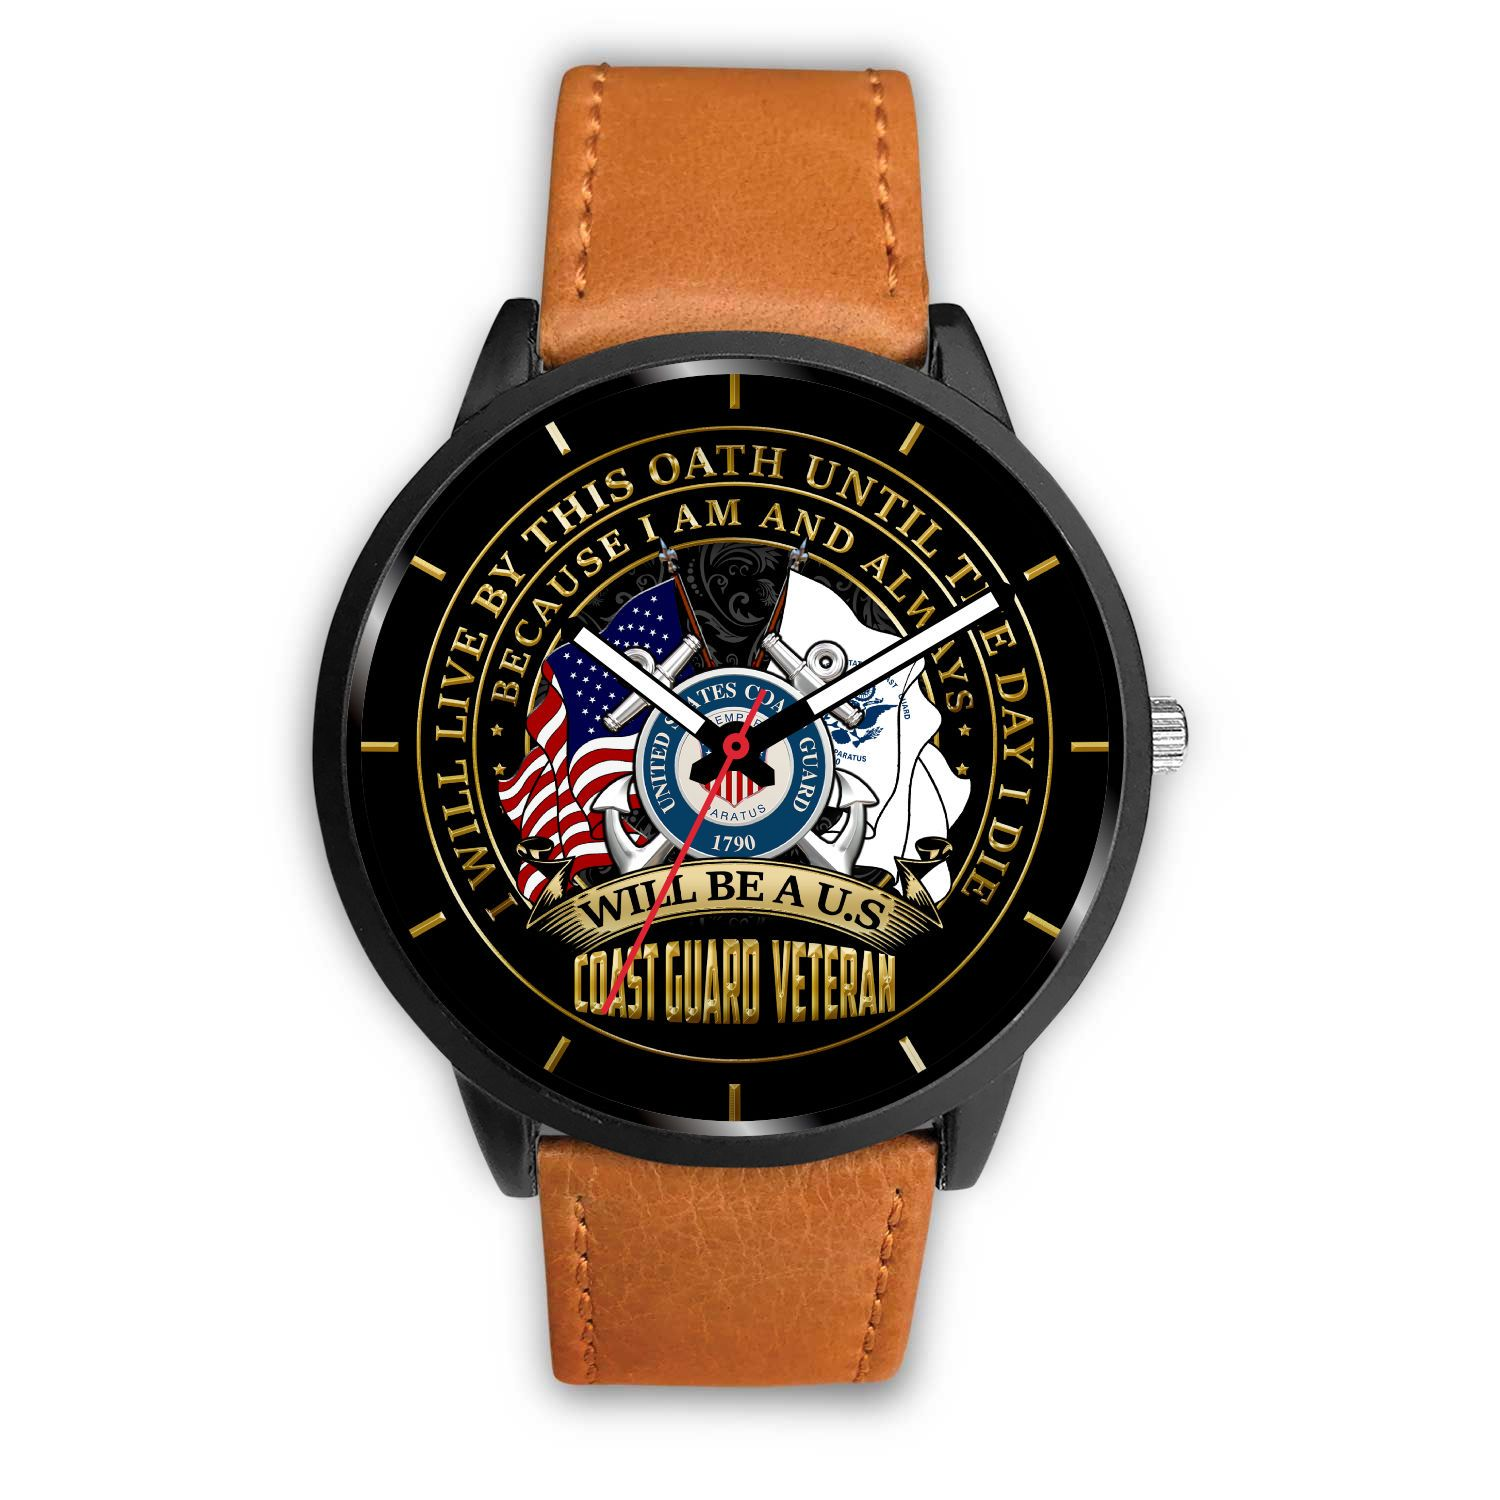 i-will-live_ef088a55-dbcb-7f46-f7d9-43b452038cec I WILL LIVE BY THIS OATH UNTIL THE DAY I DIE BECAUSE I AM AND ALWAYS WILL BE A U.S COAST GUARD VETERAN WATCH  %tag